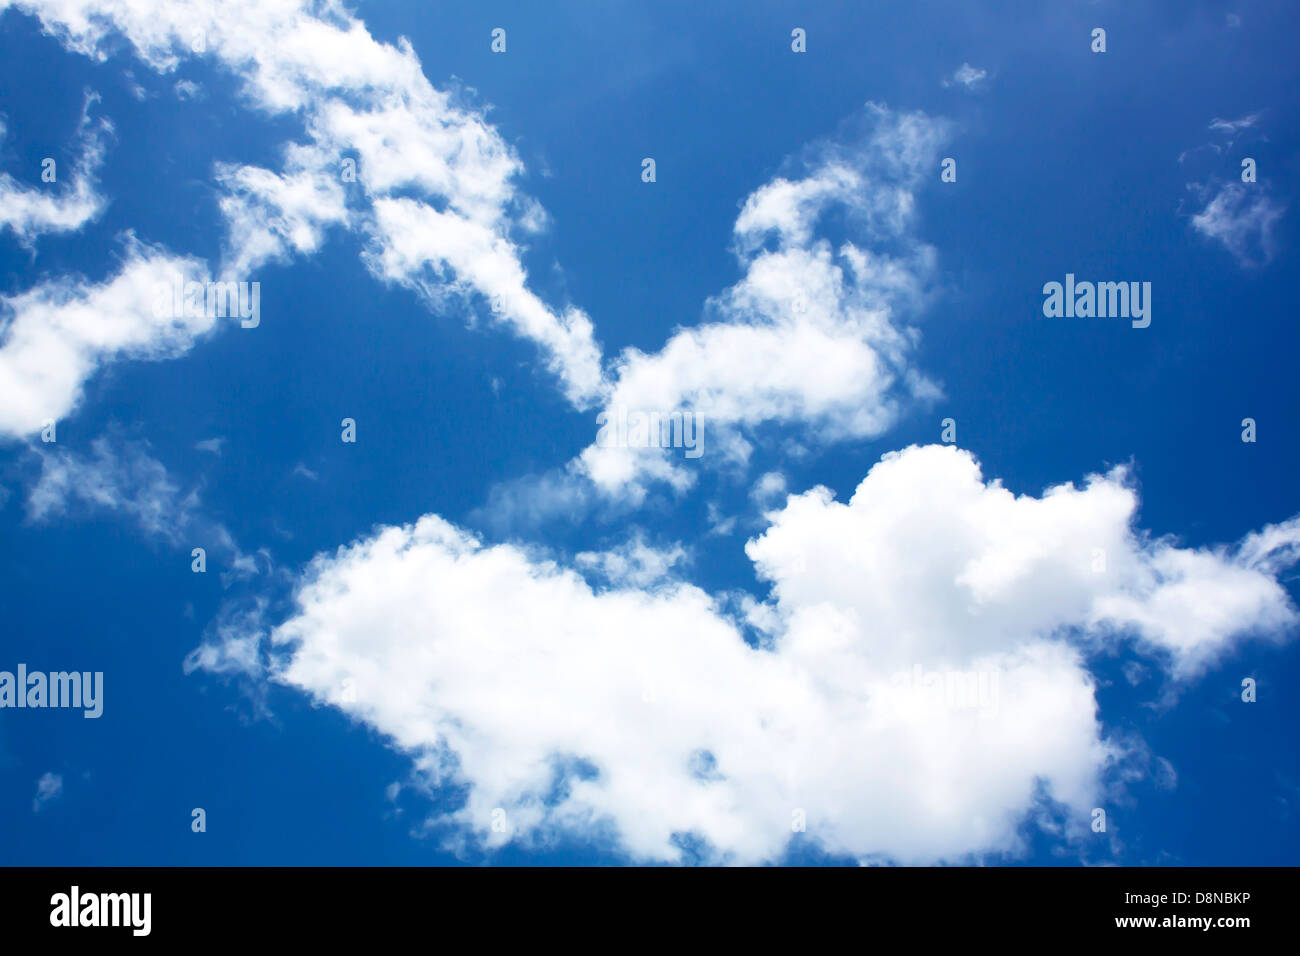 Blue sky with clouds, bright natural beauty. - Stock Image